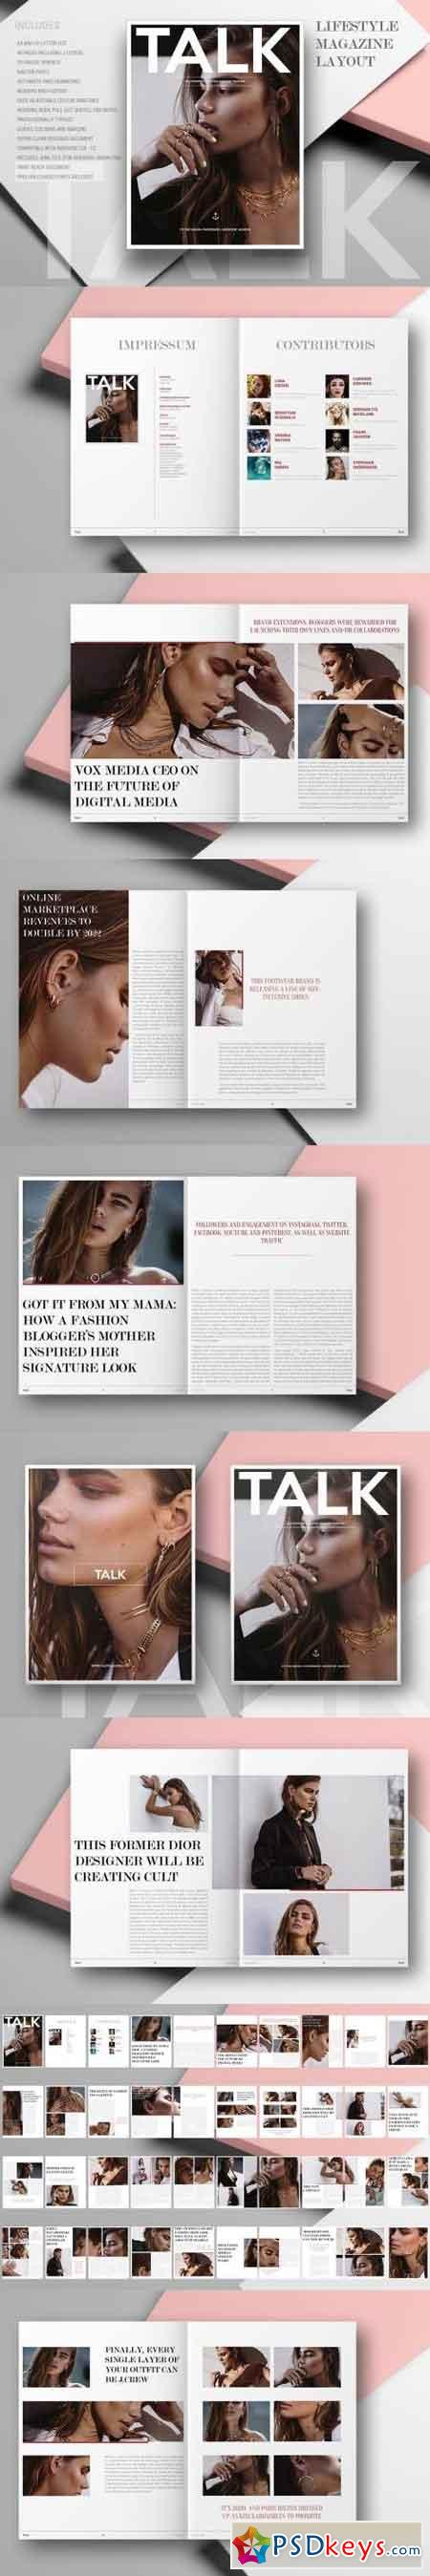 TALK LIFESTYLE MAGAZINE